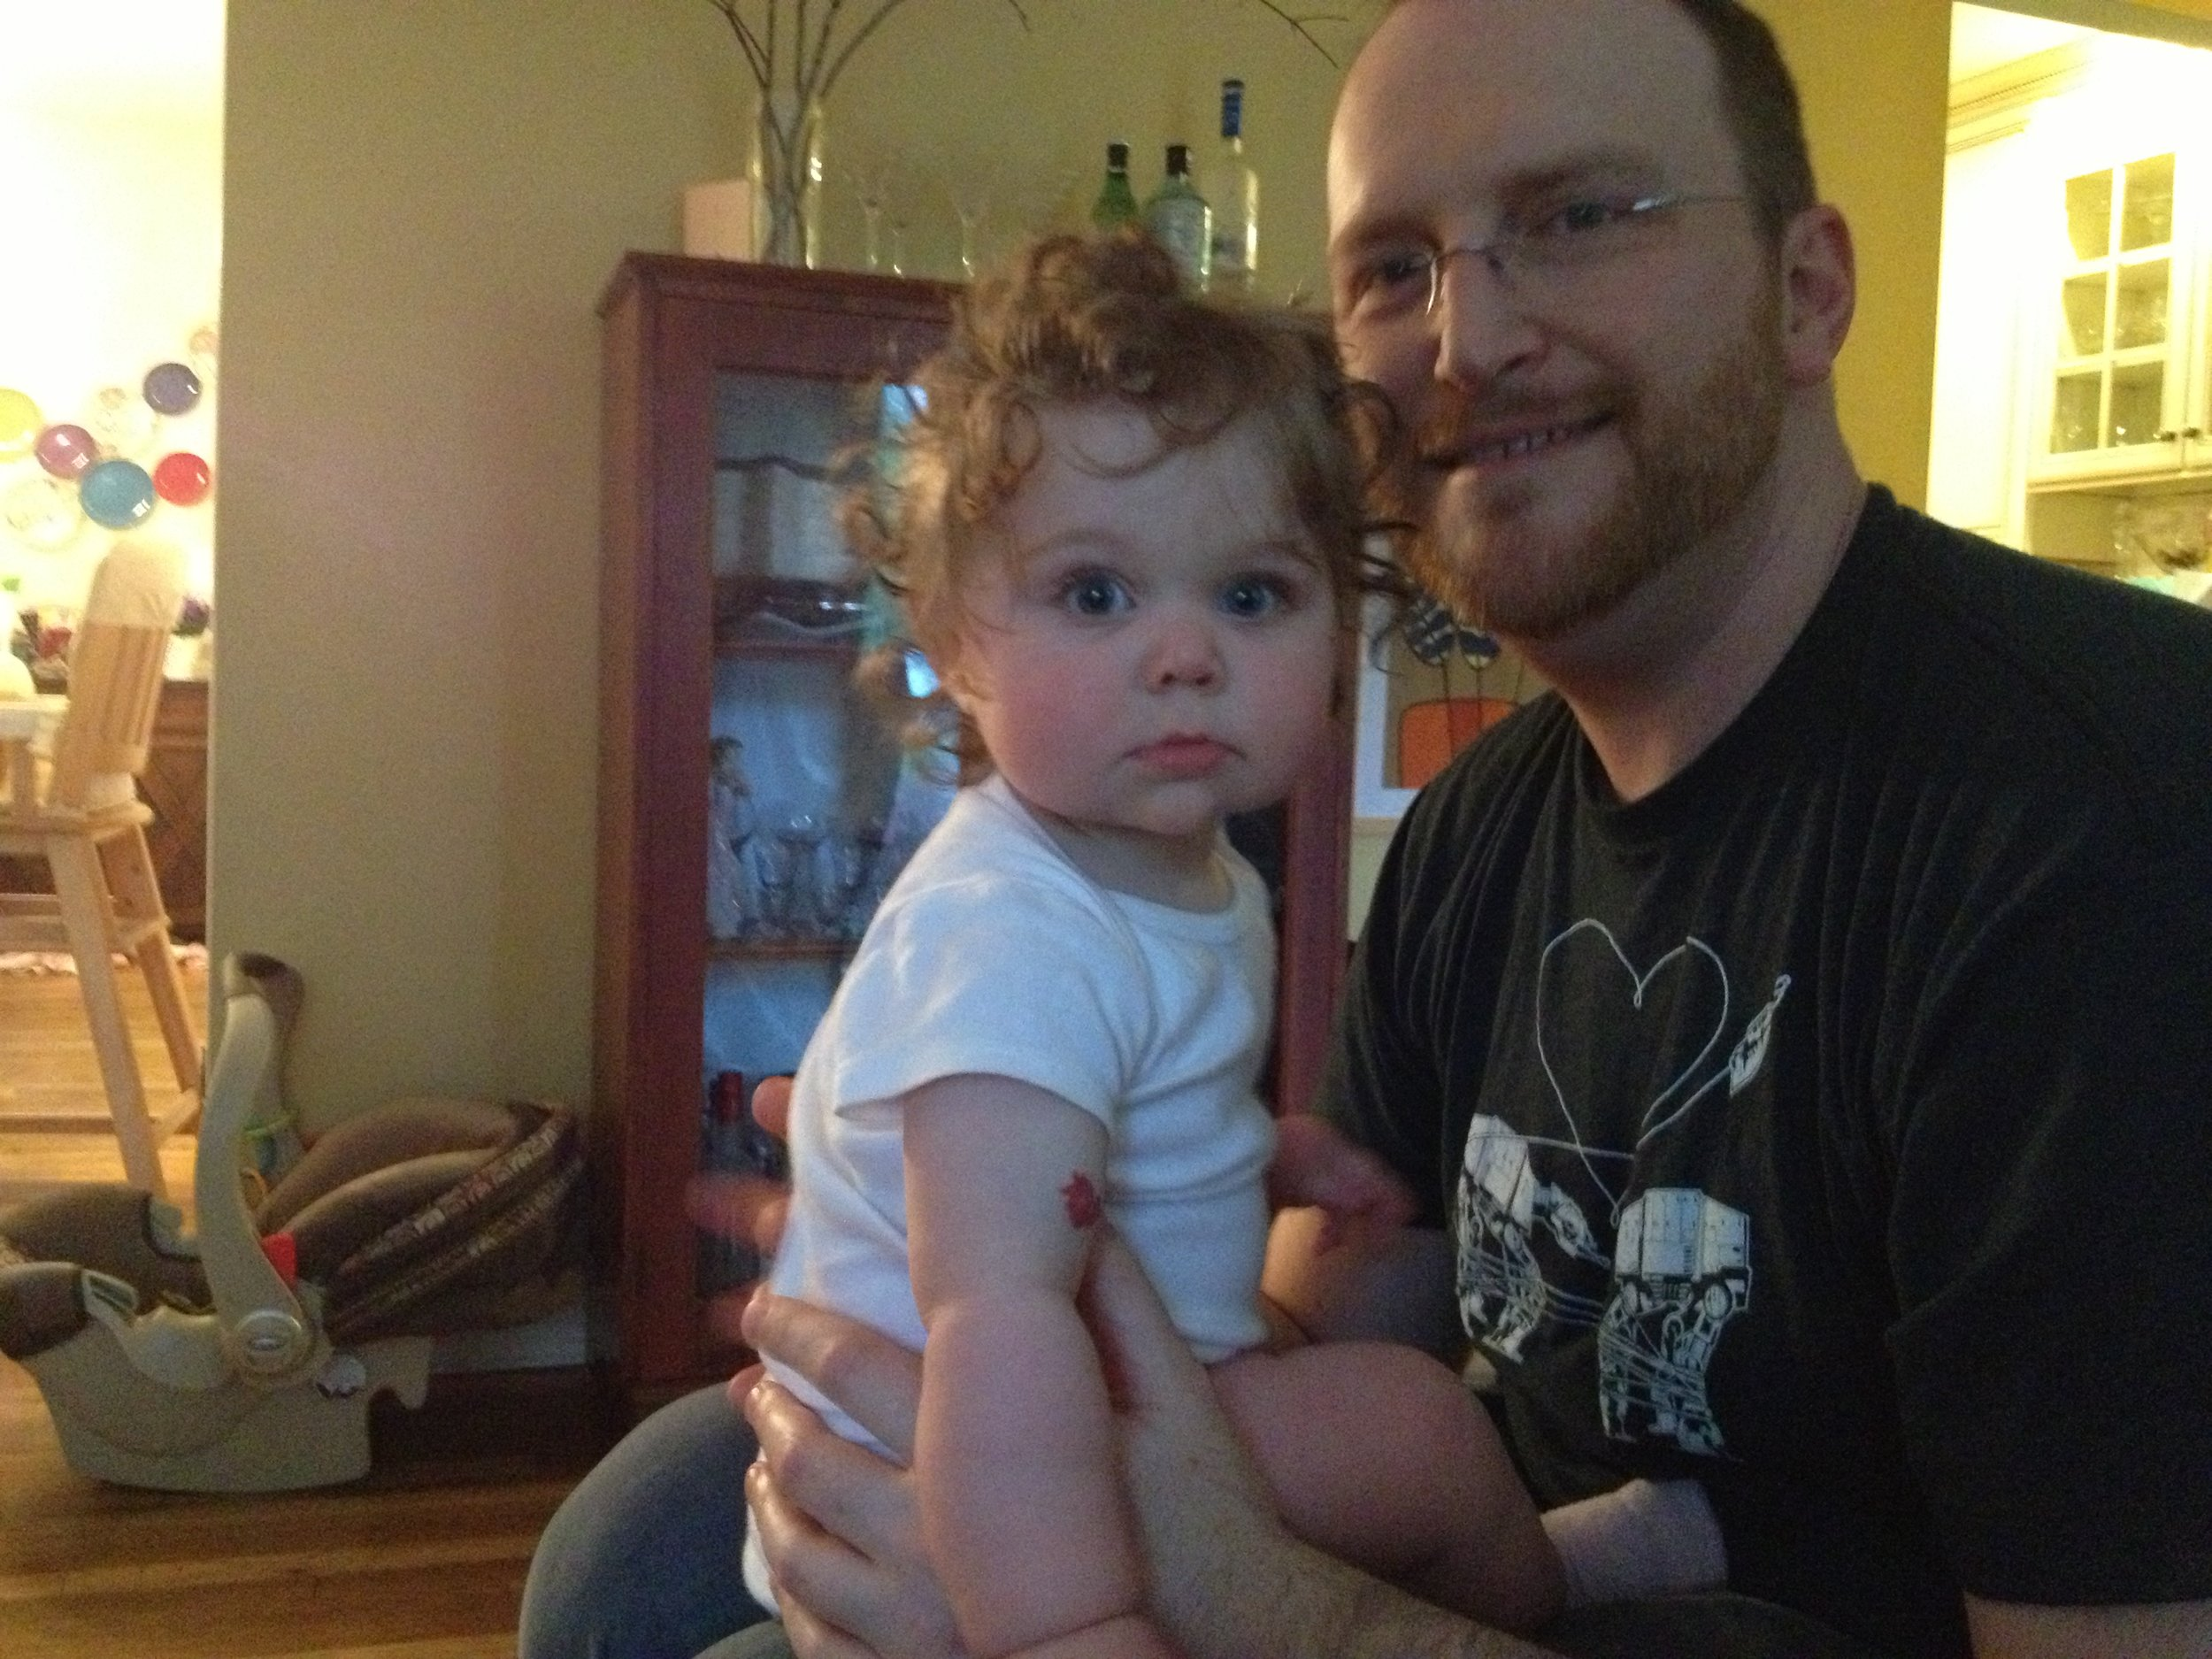 Noelle and Uncle Brian. (Noelle just woke up from her nap!)